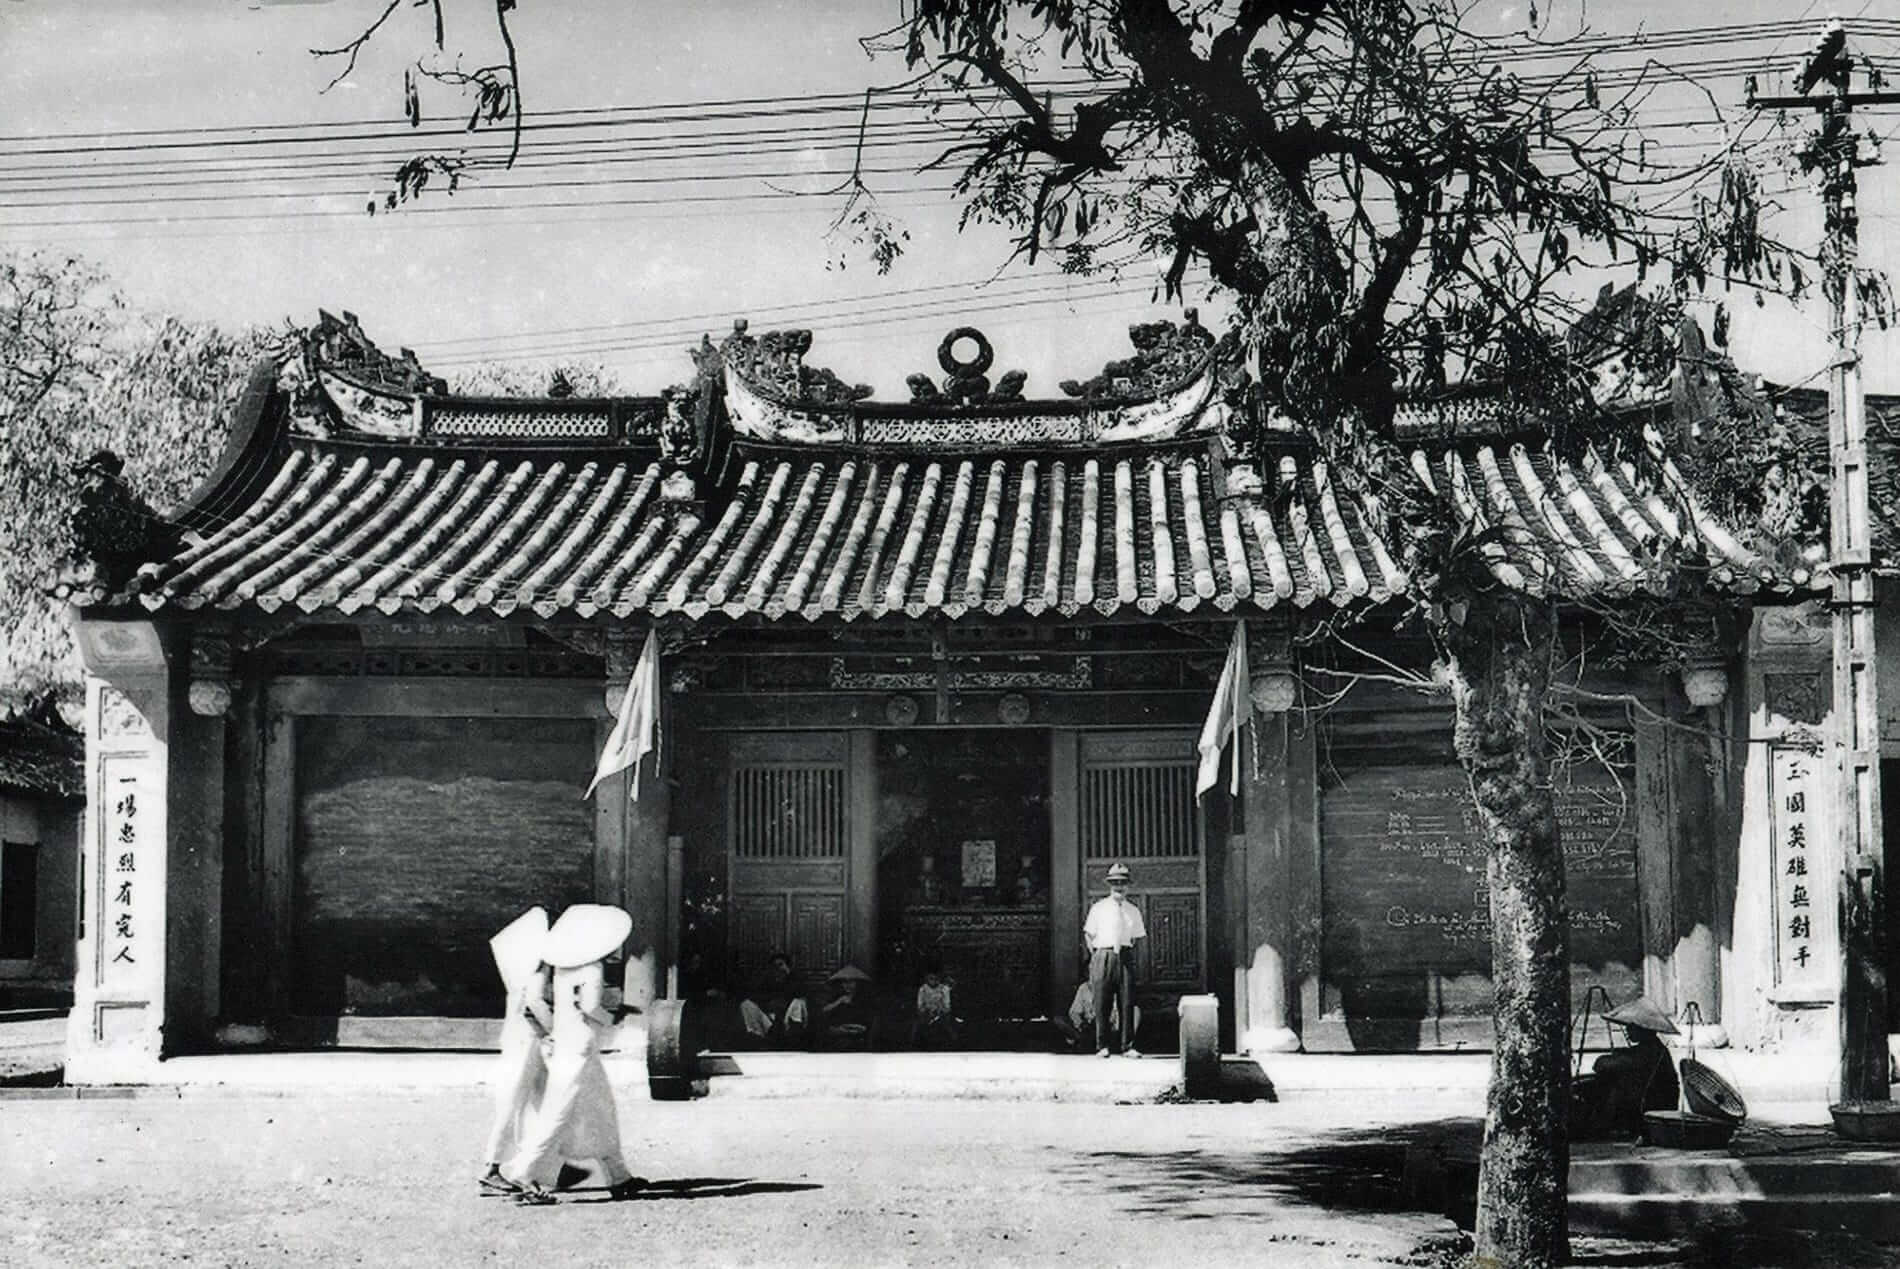 An old picture of a temple- Hoi An Temples and Pagodas